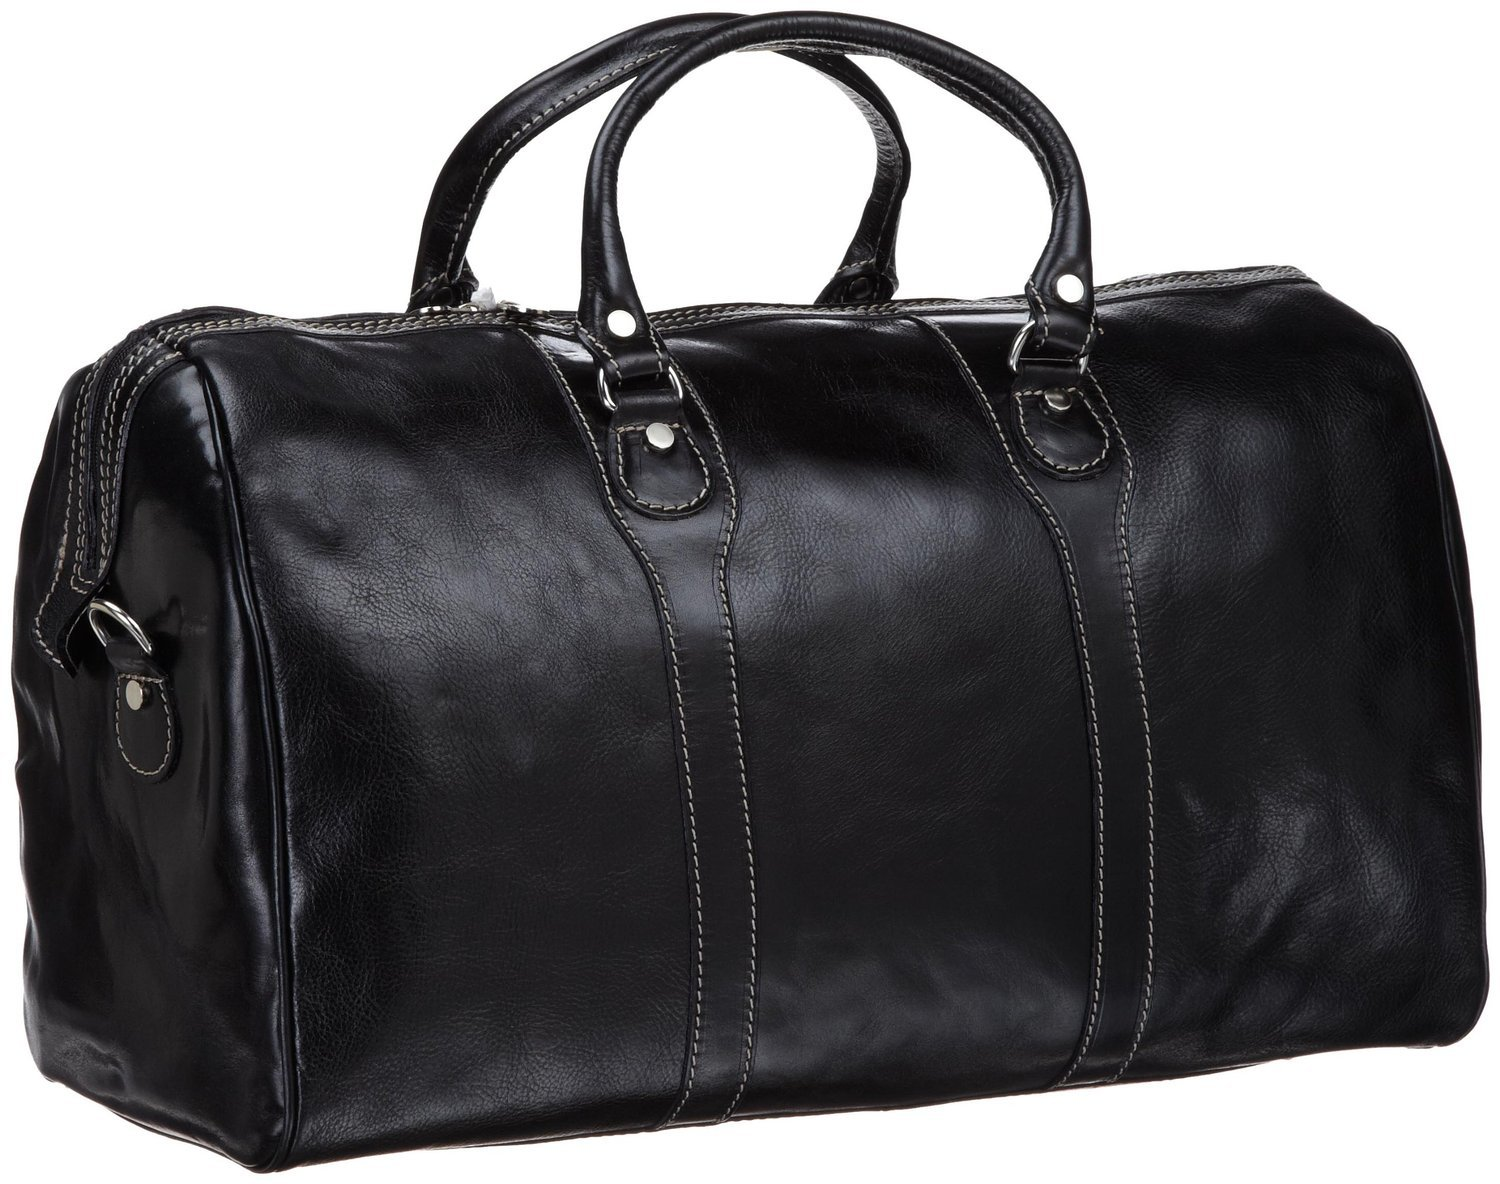 Floto Milano Duffle Bag, Leather Carry on in Black